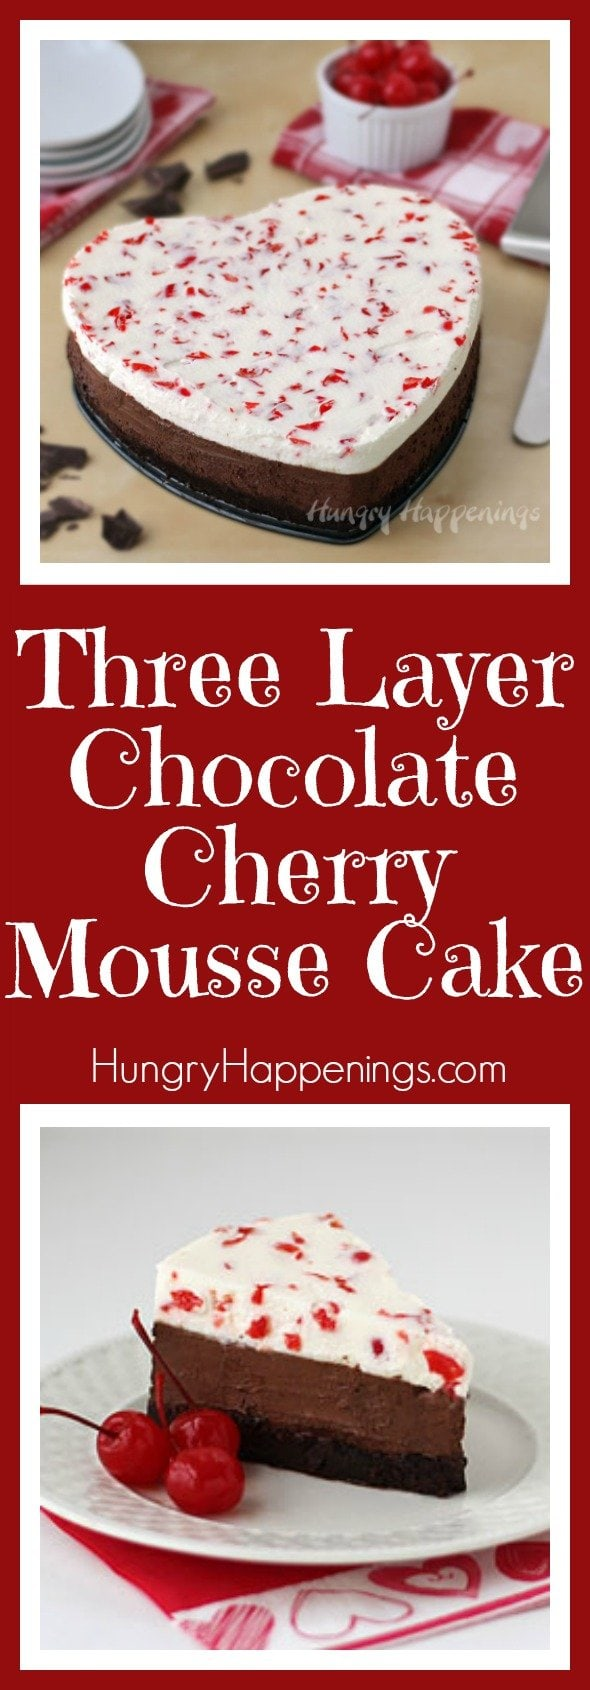 Whats better than a layer of chocolate? Three layers of chocolate! Try this Three Layer Chocolate Cherry Mousse Cake and it will fulfill all your chocolate fantasies.